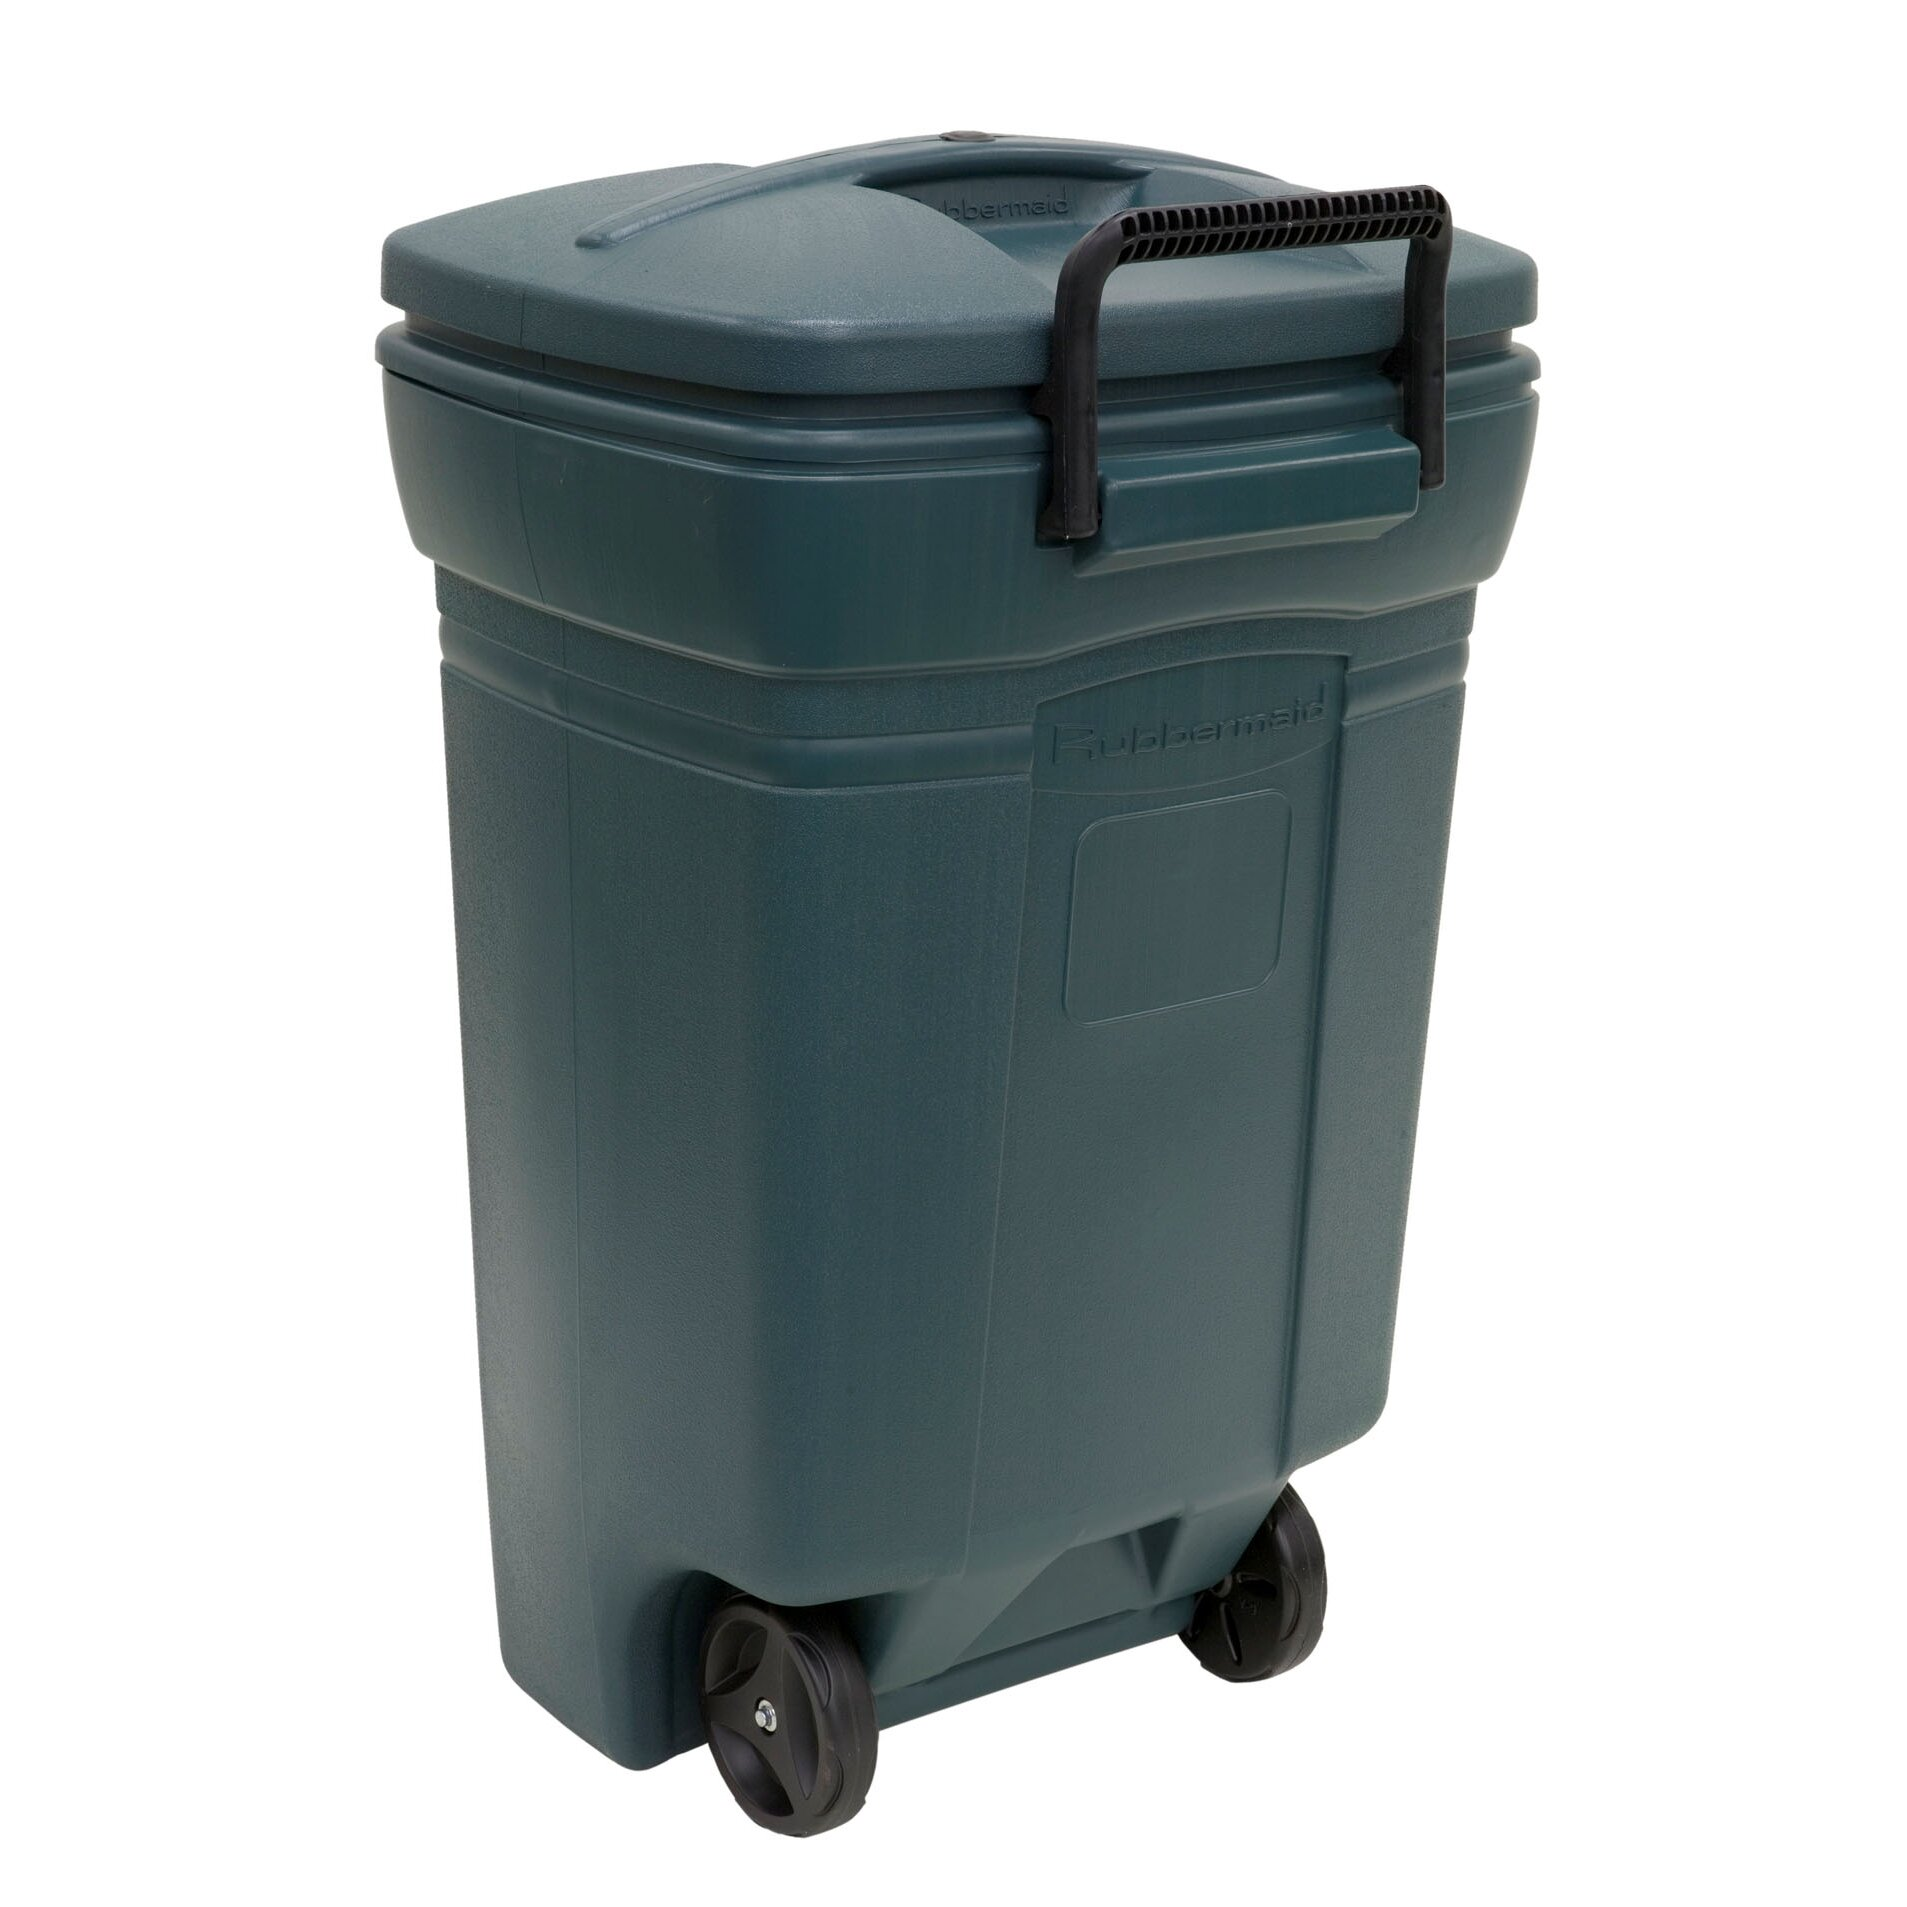 Image Result For Rubbermaid Gallon Trash Can